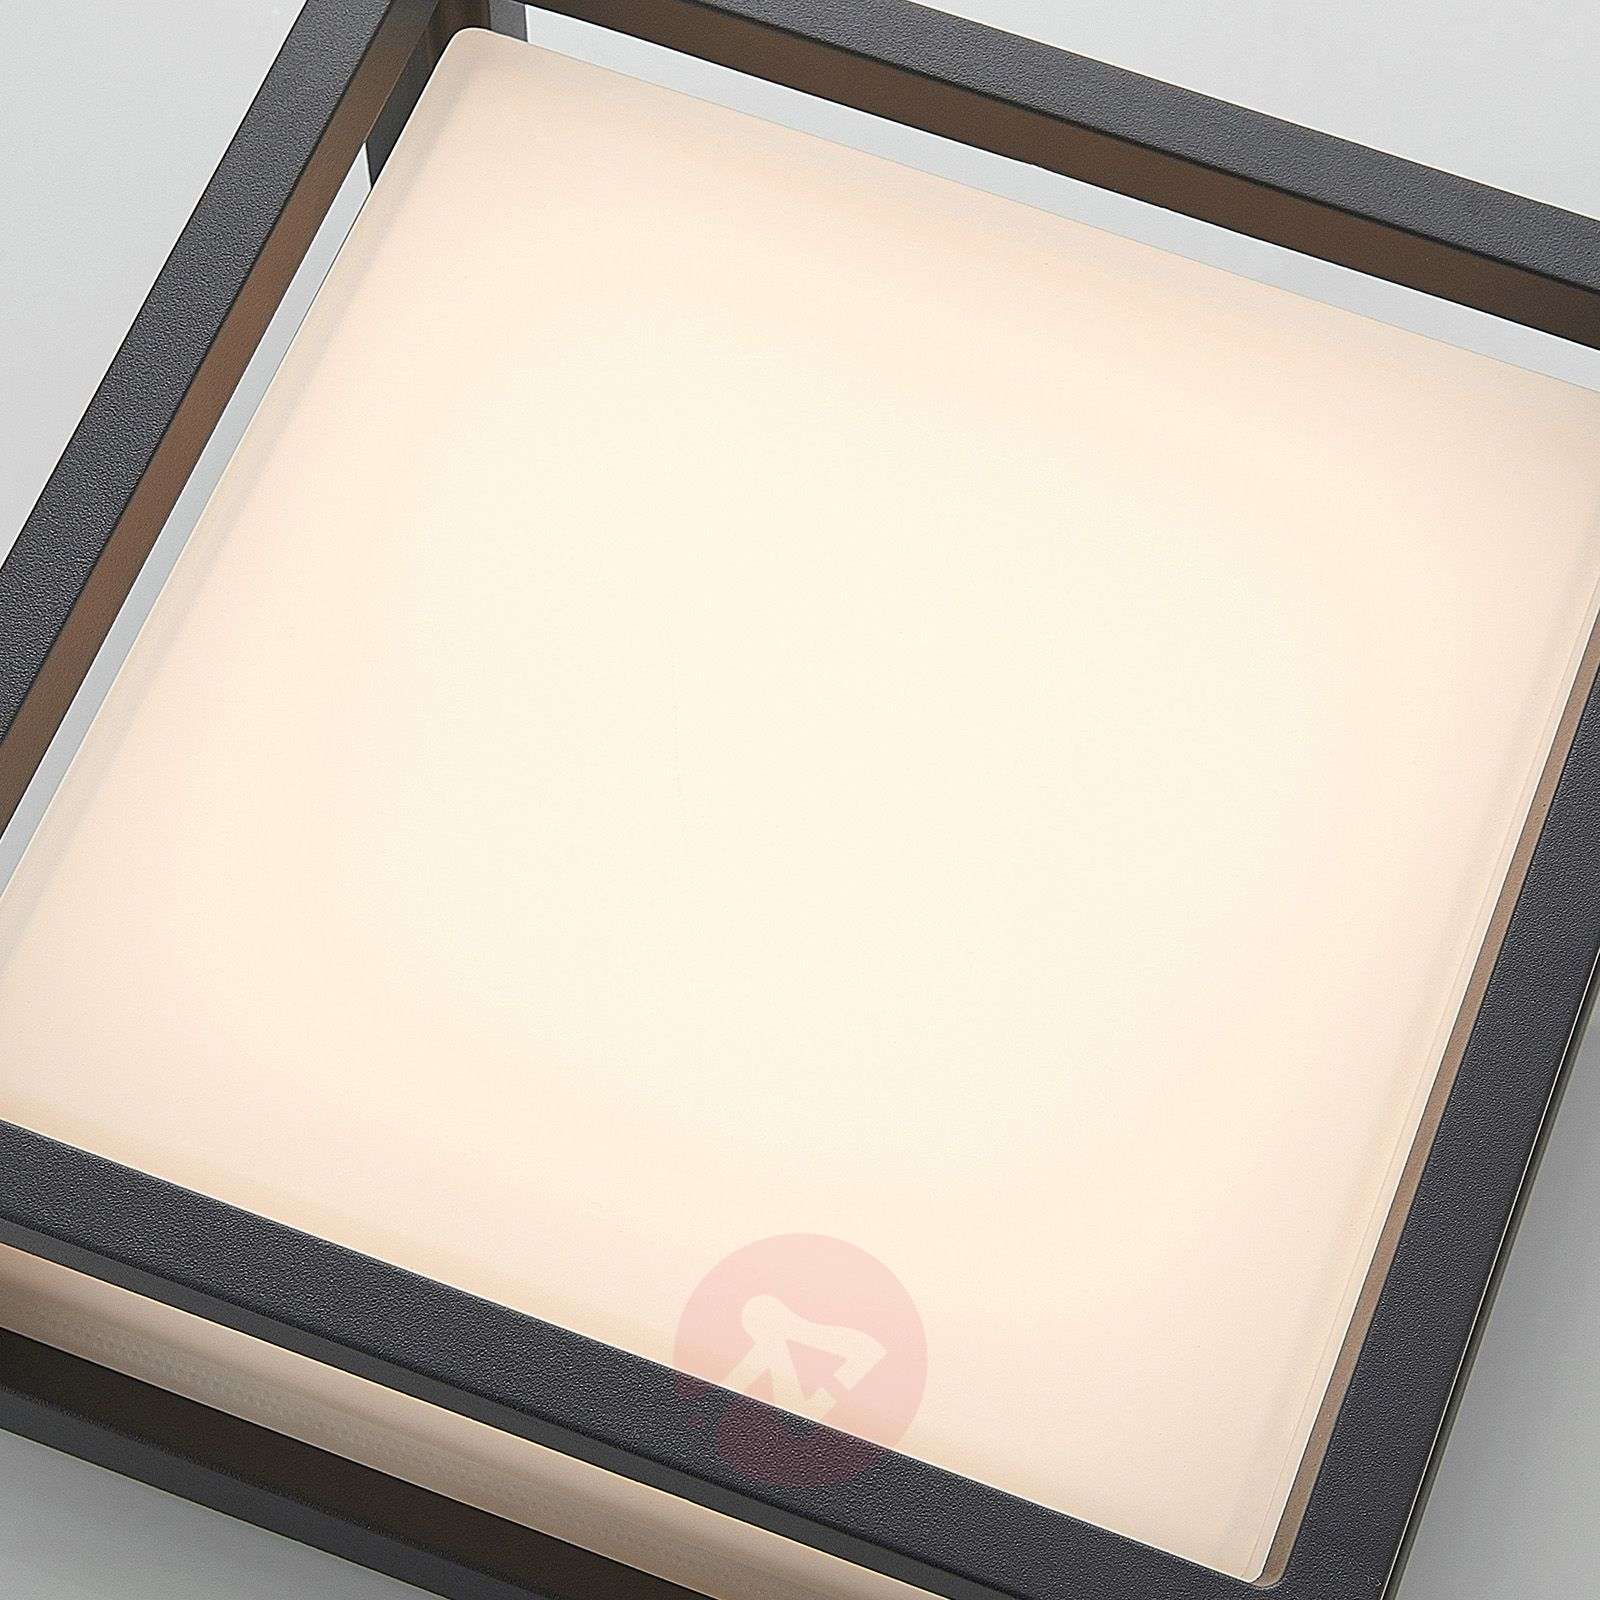 Applique da esterni LED Harpa 25 x 25 cm-9969138-02